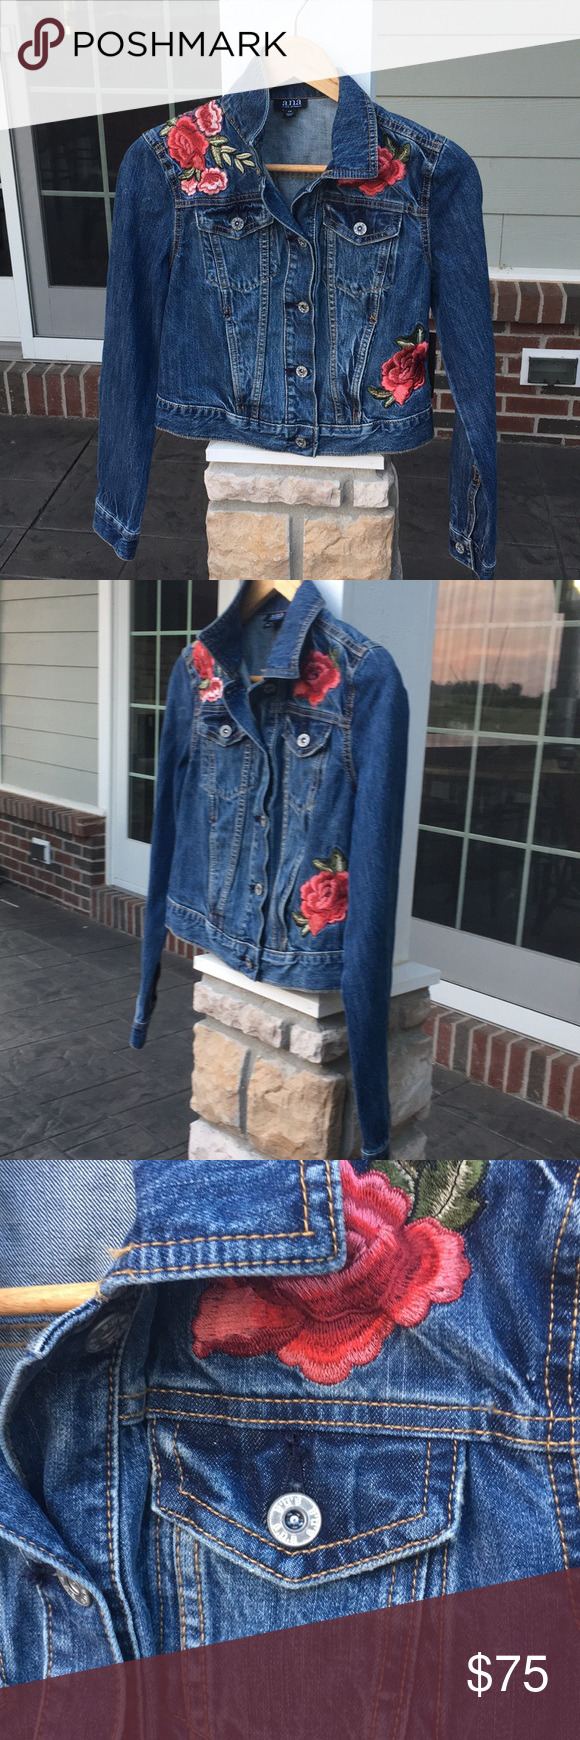 Rose Embroiled Jean Jacket Jackets Jean Jacket Clothes [ 1740 x 580 Pixel ]